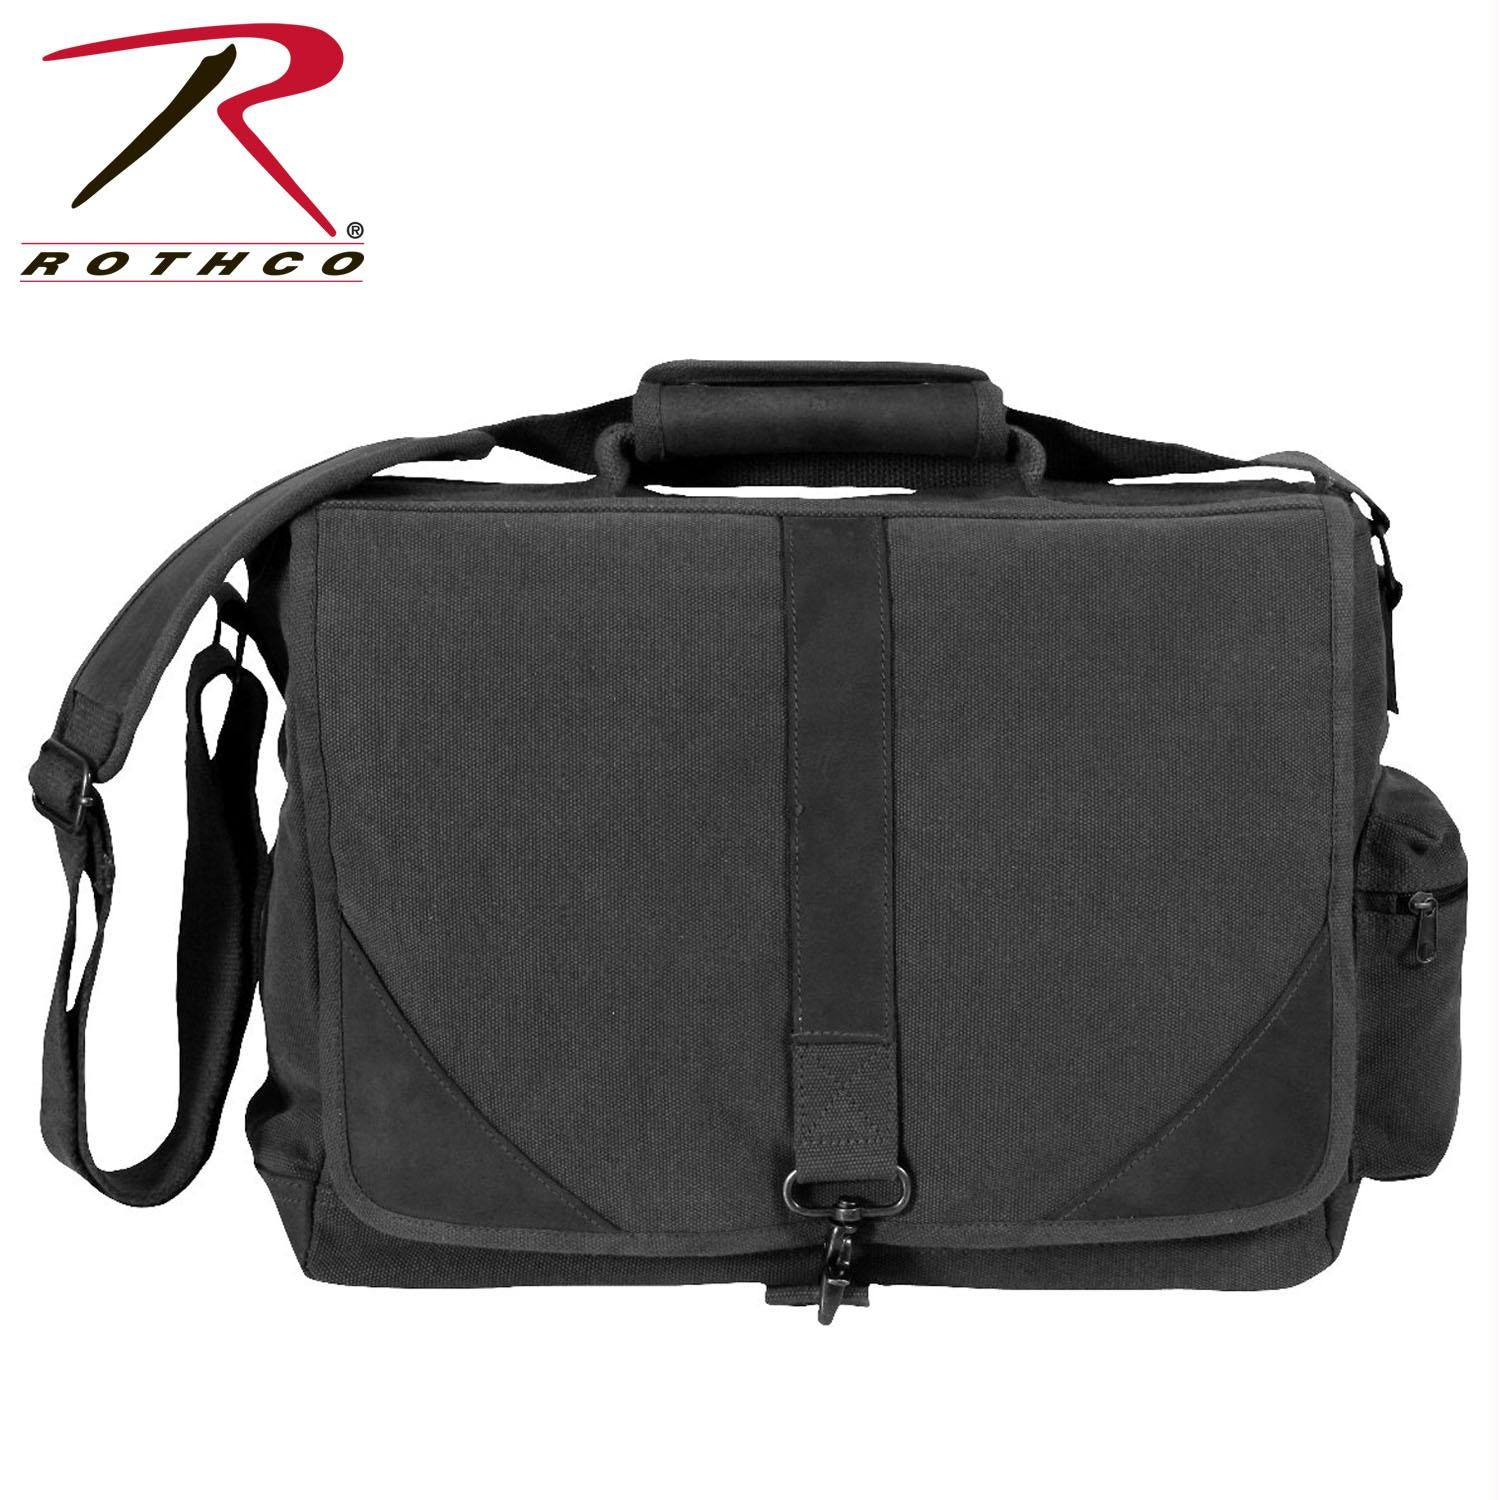 Rothco Vintage Canvas Urban Pioneer Laptop with Leather Accents - Black